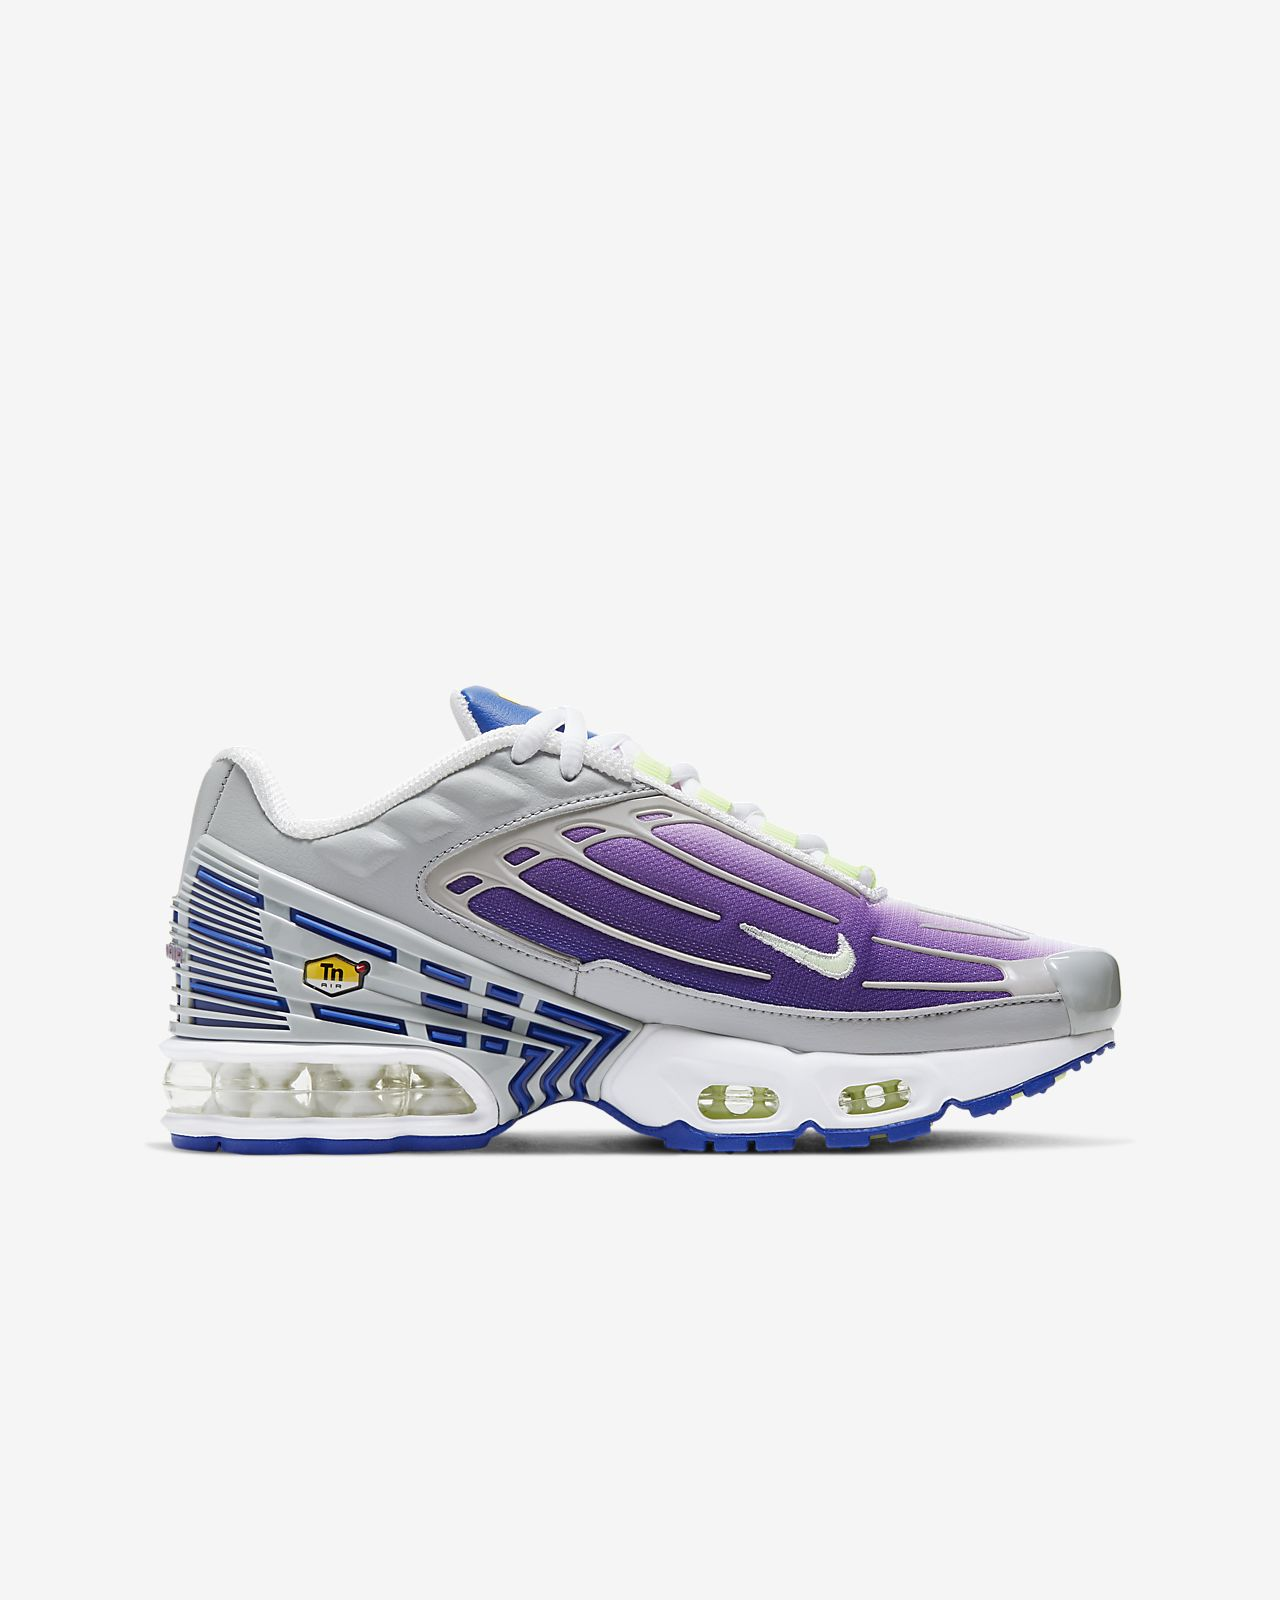 Doubling Up: The Nike Air Max Plus 97 & Air Max 97 Plus